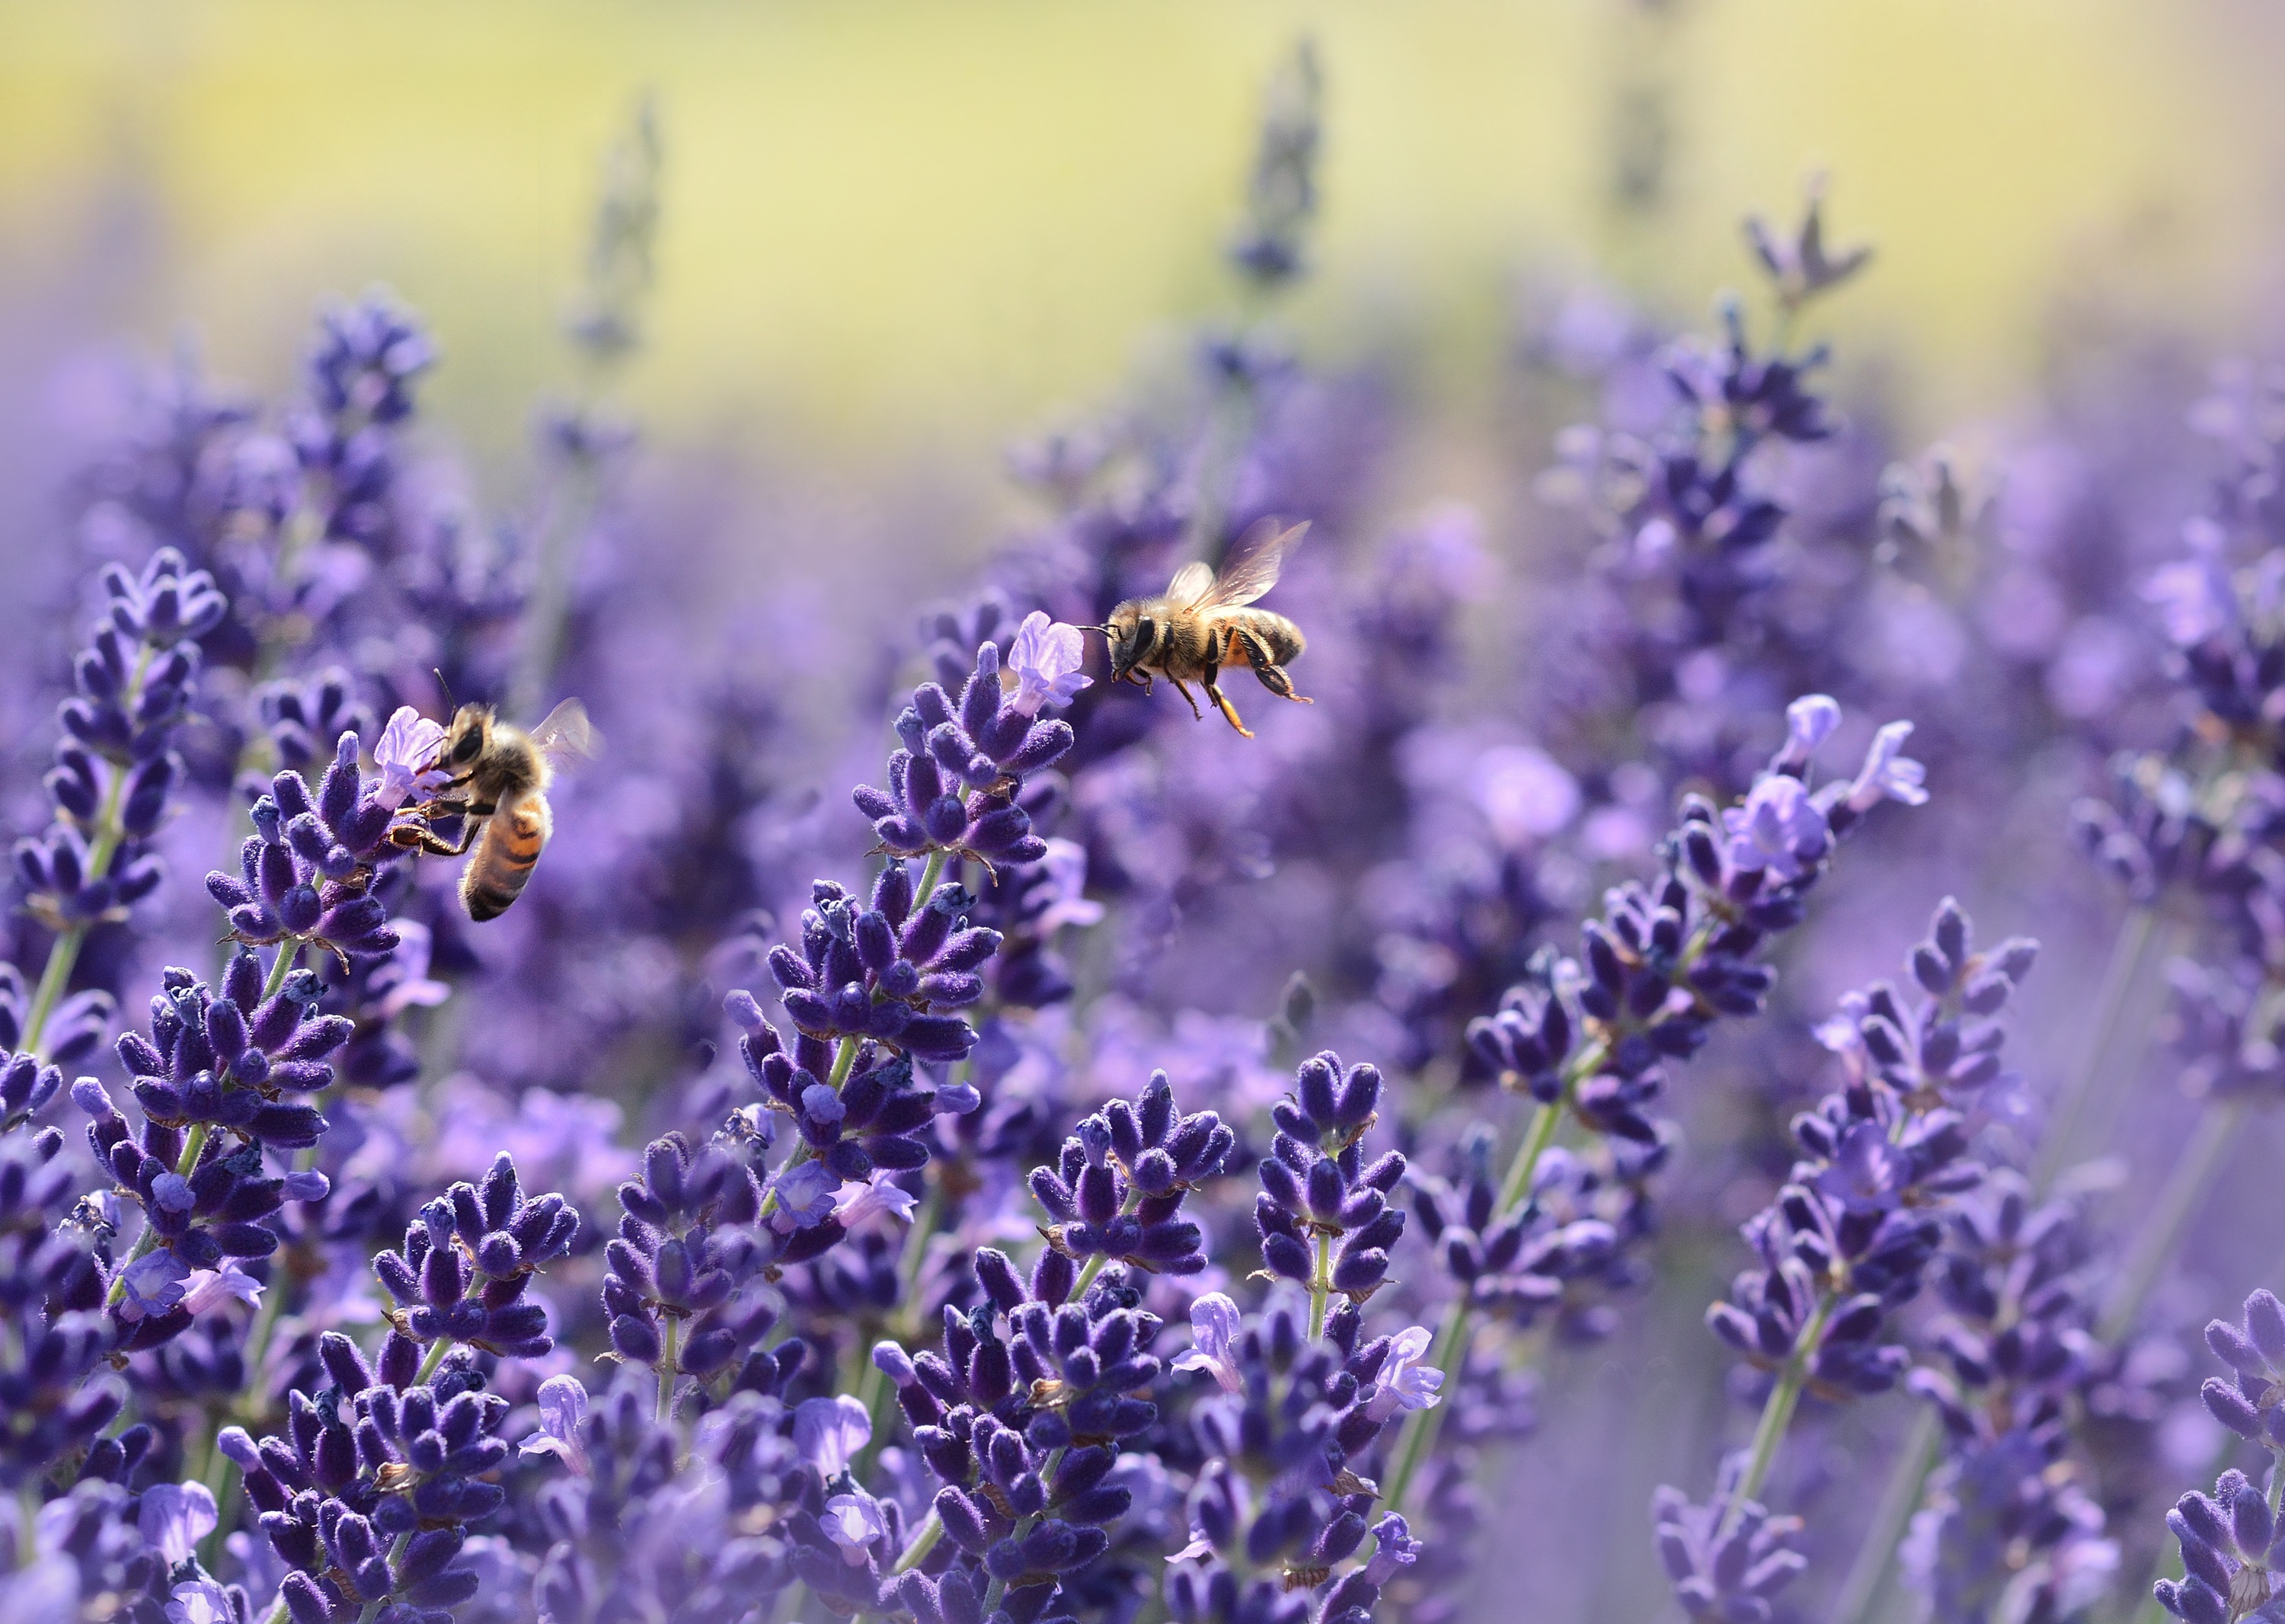 Field of lavender flowers pollinated by bees.